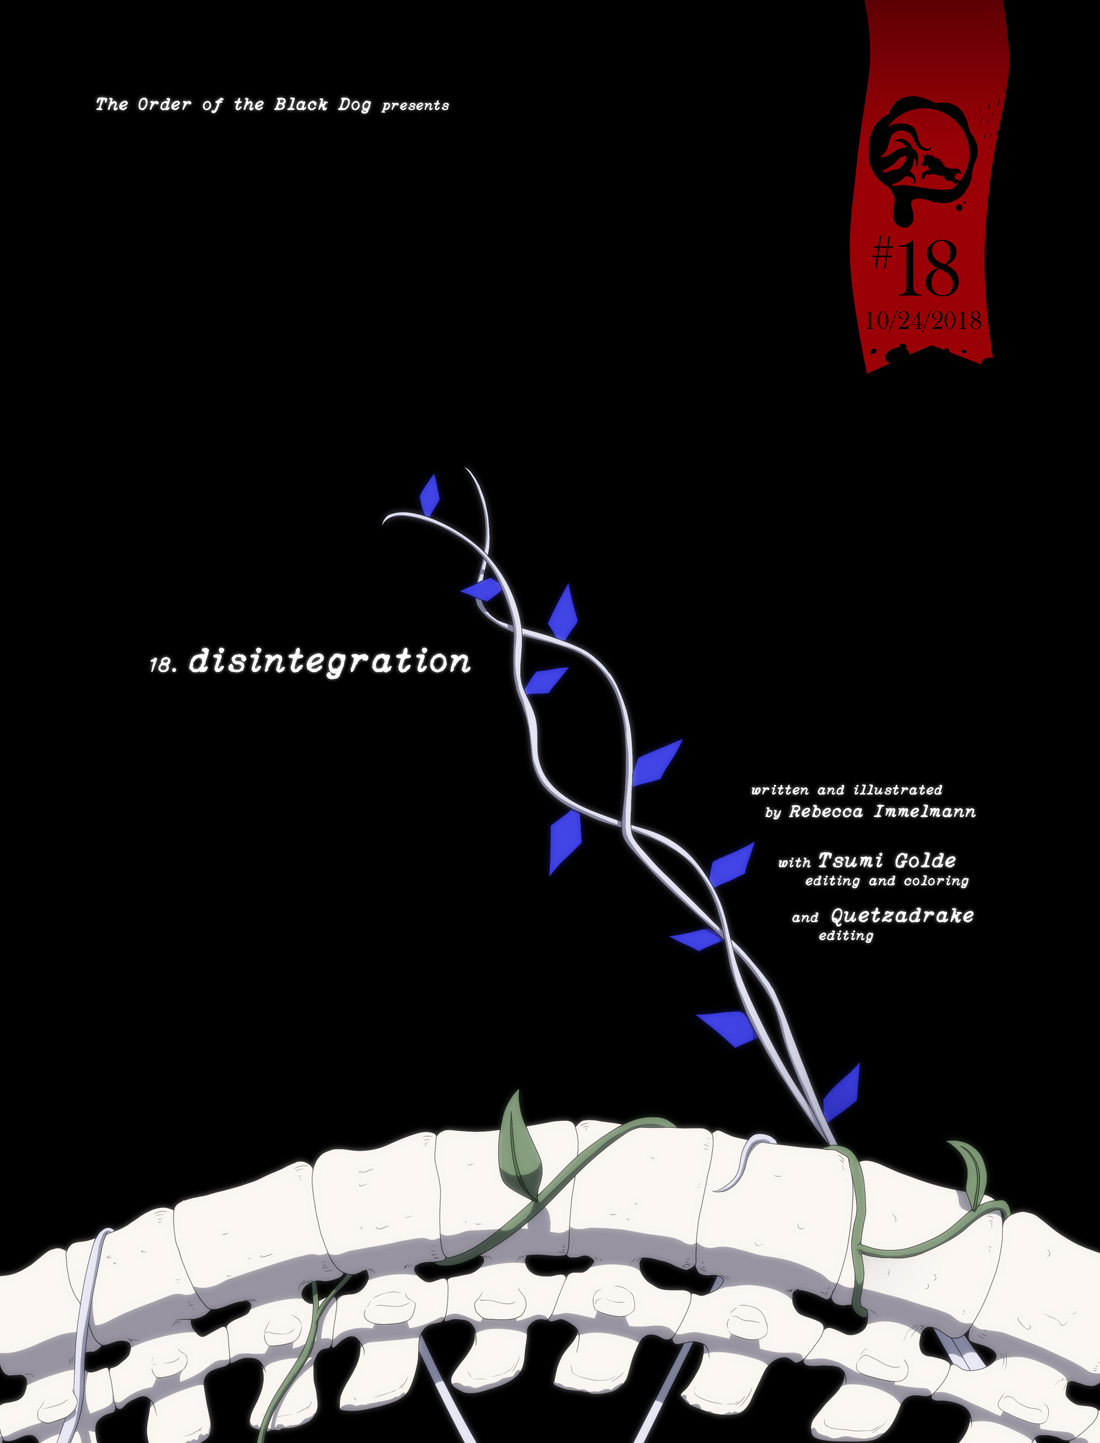 Issue 18, Cover